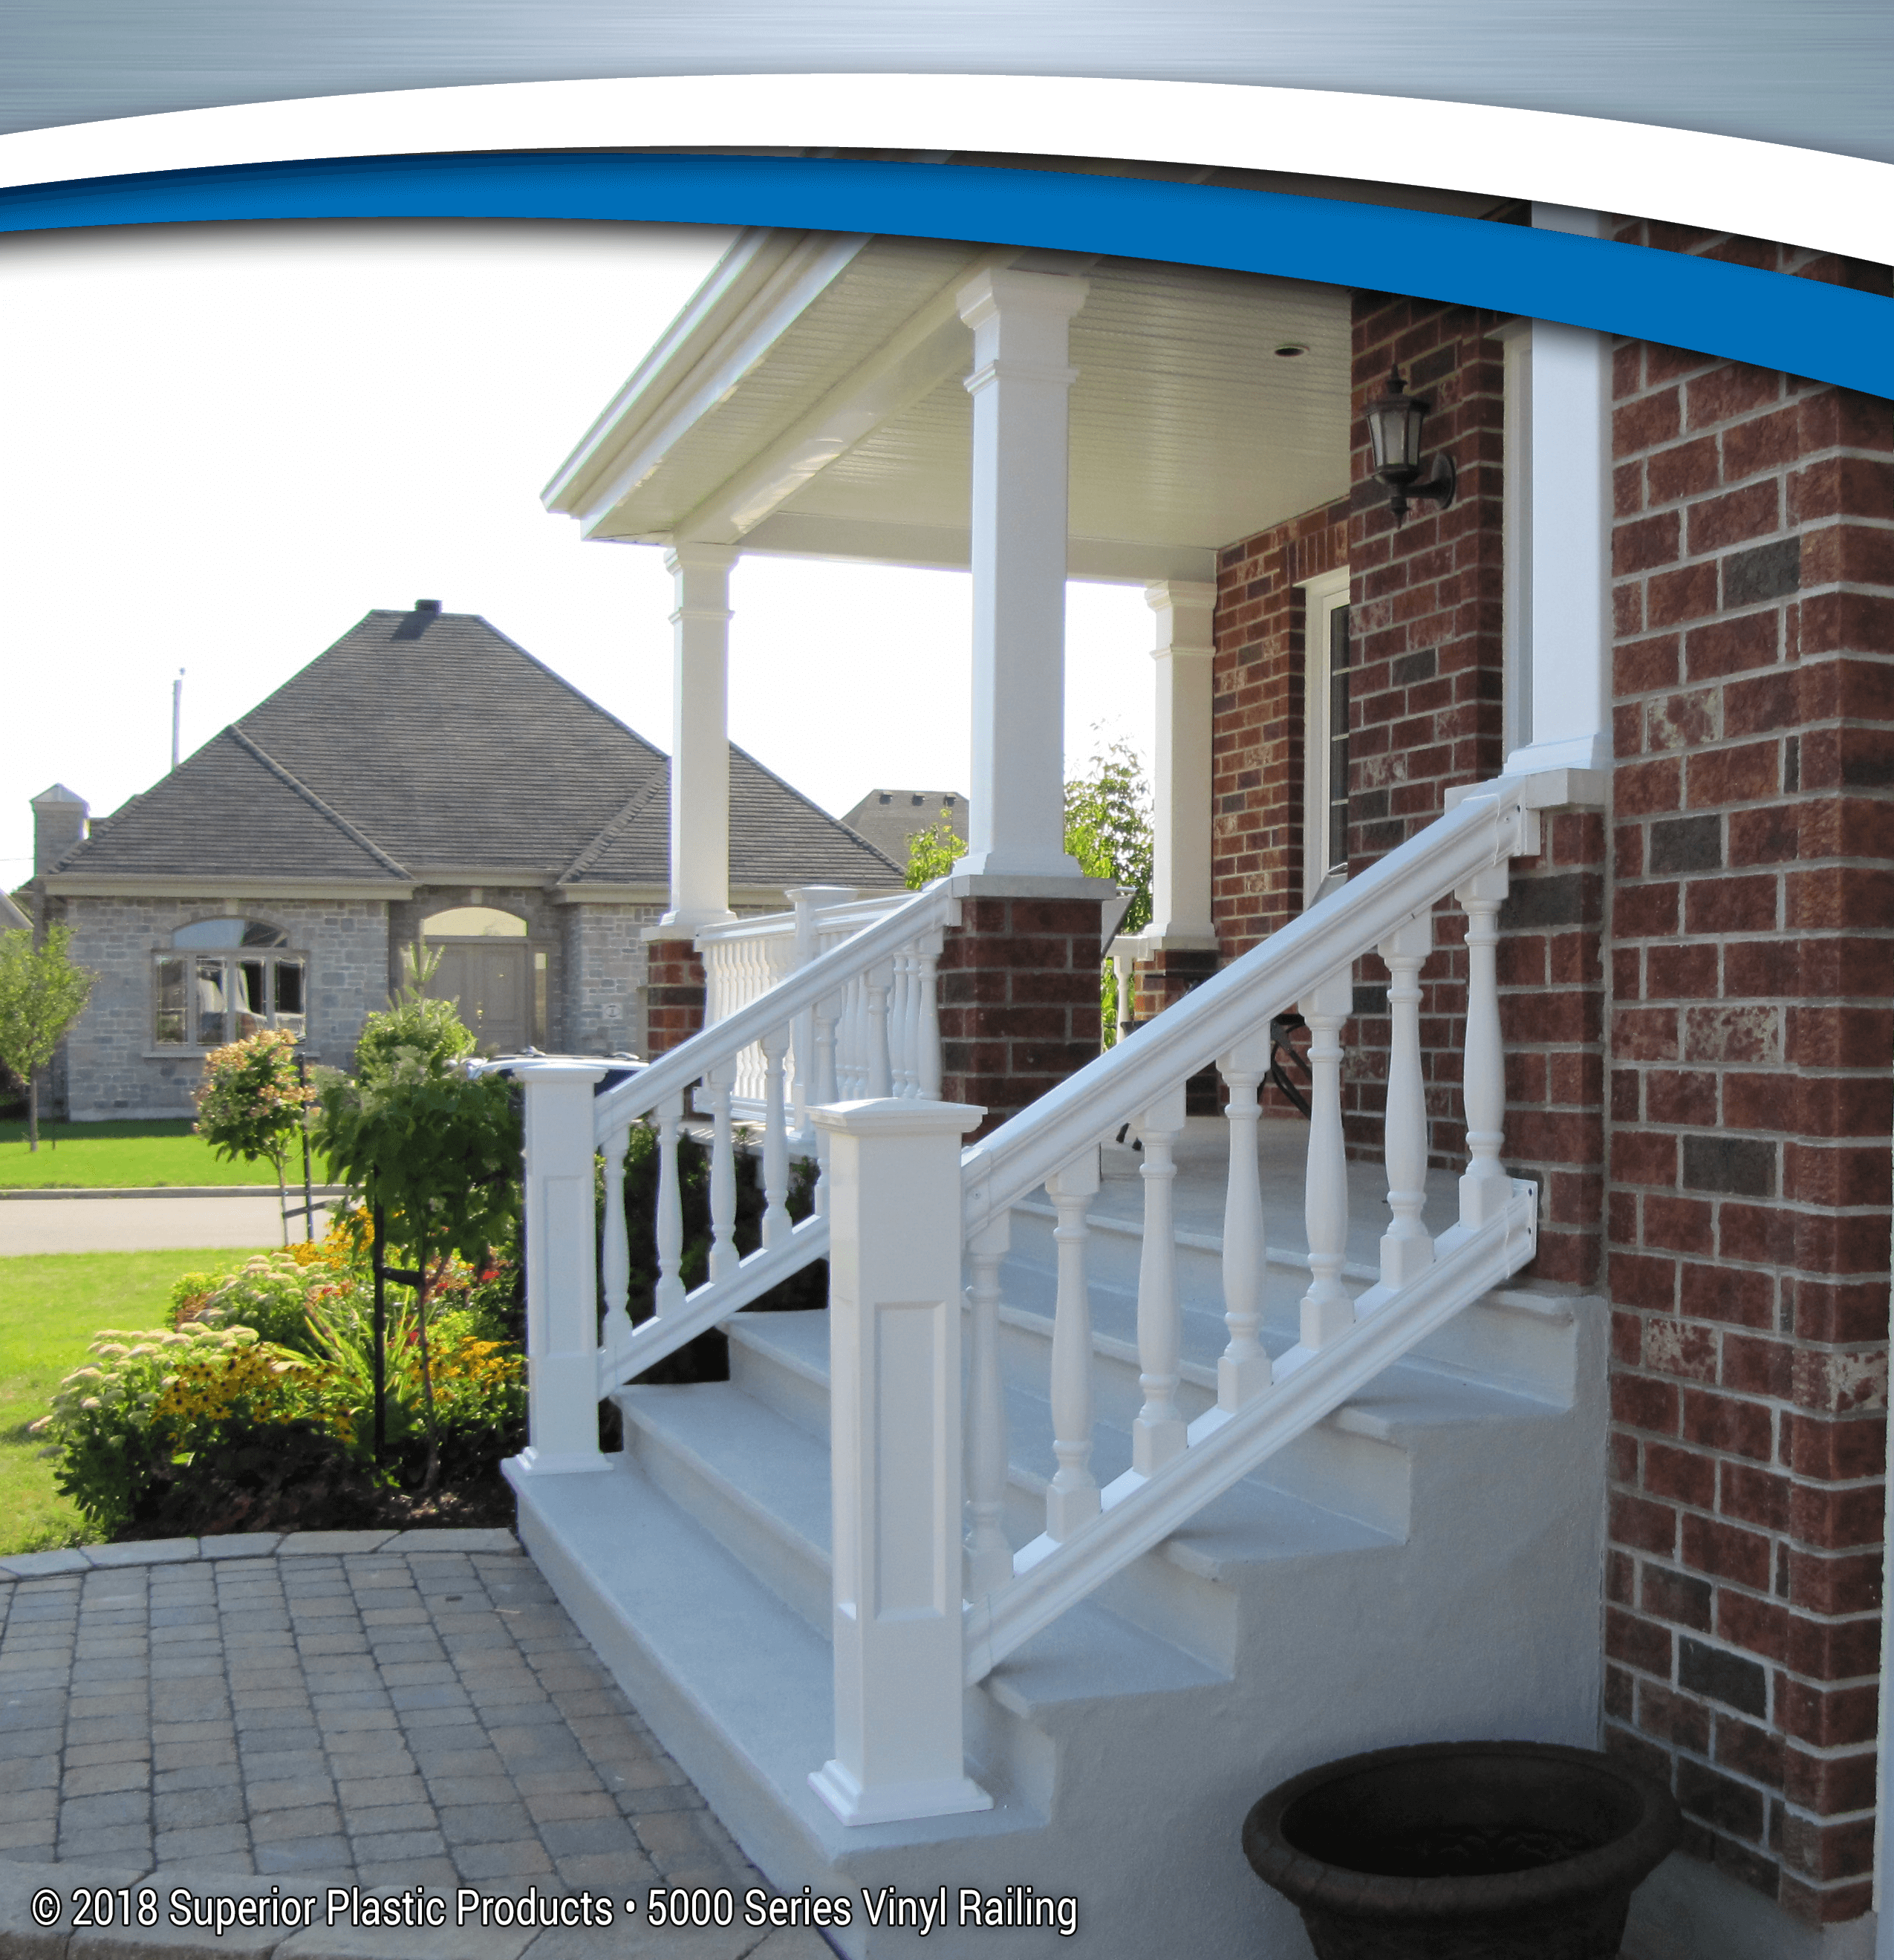 5000 Series Vinyl Railing - Superior Plastic Products